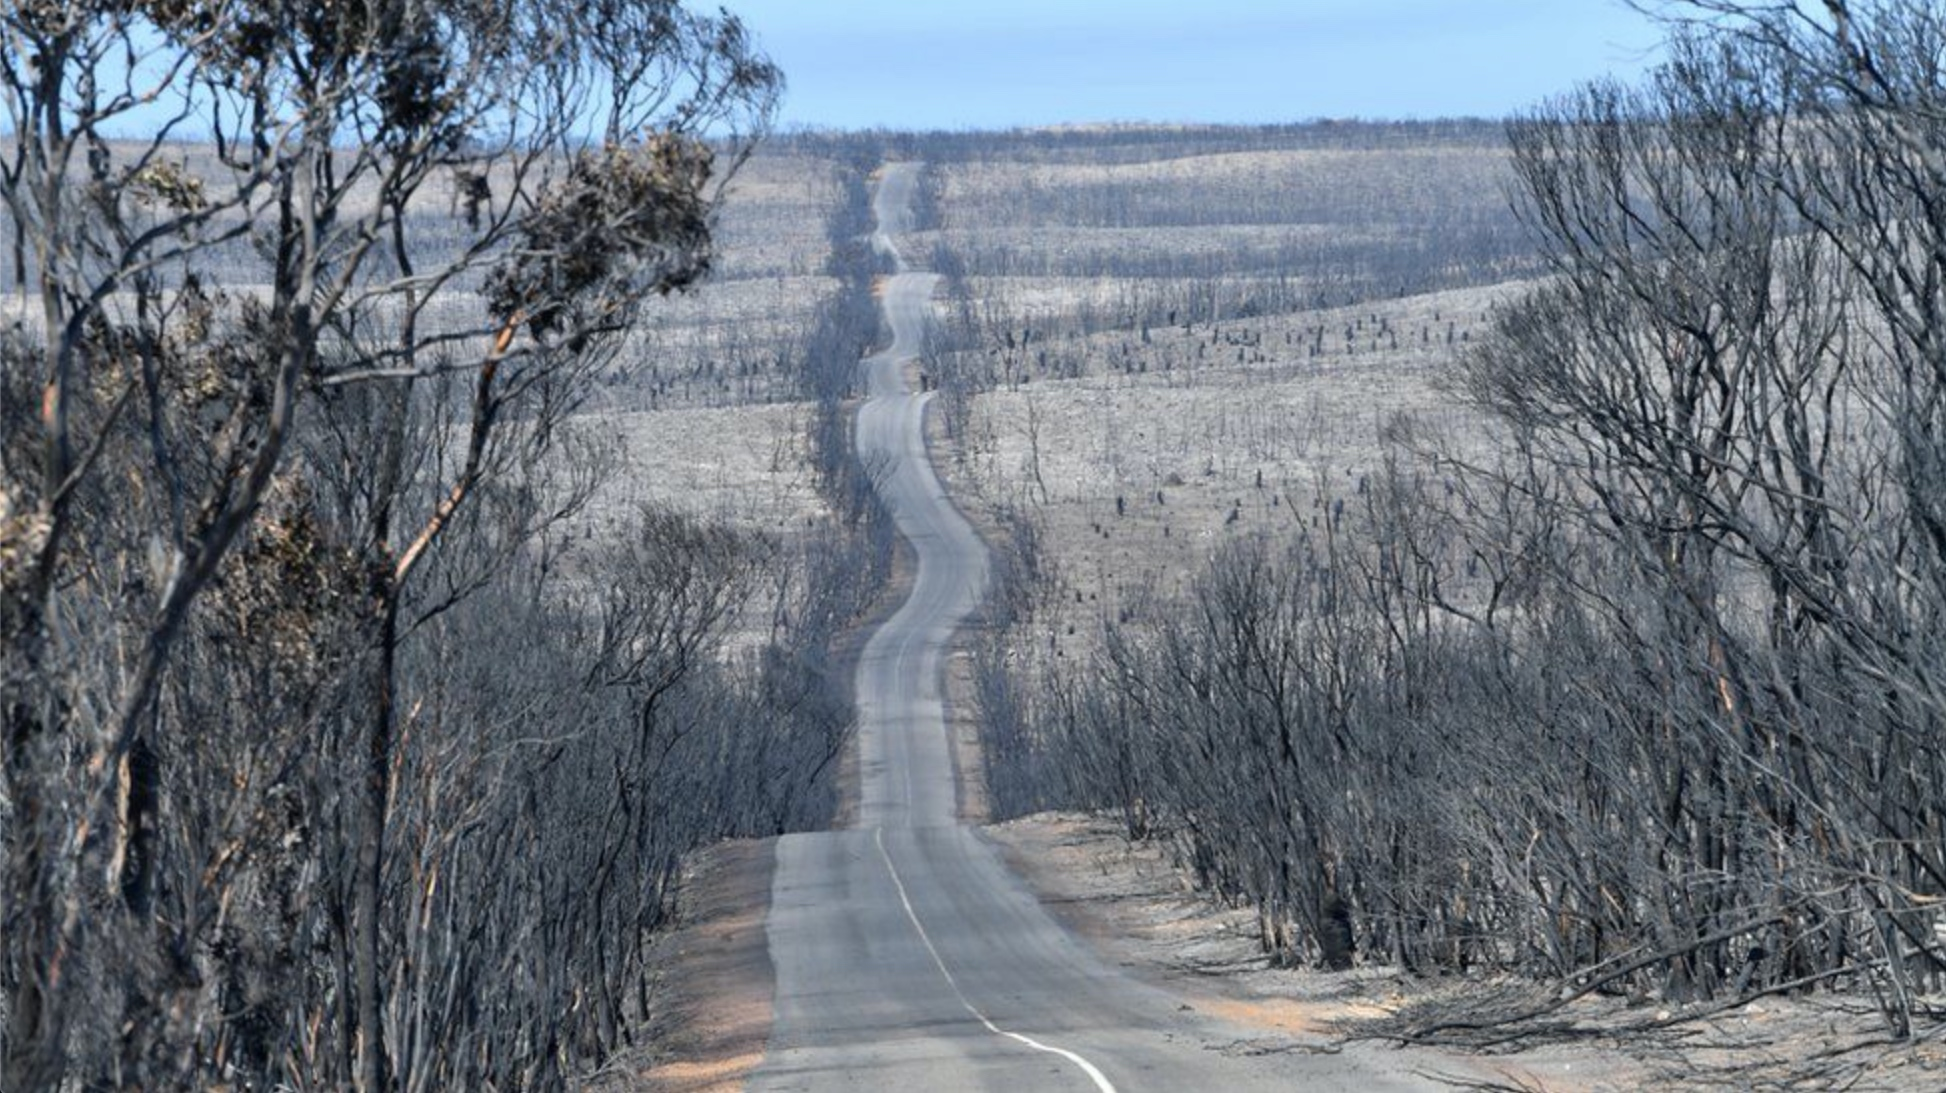 Image shows a desolate stretch of road surrounded by burned trees